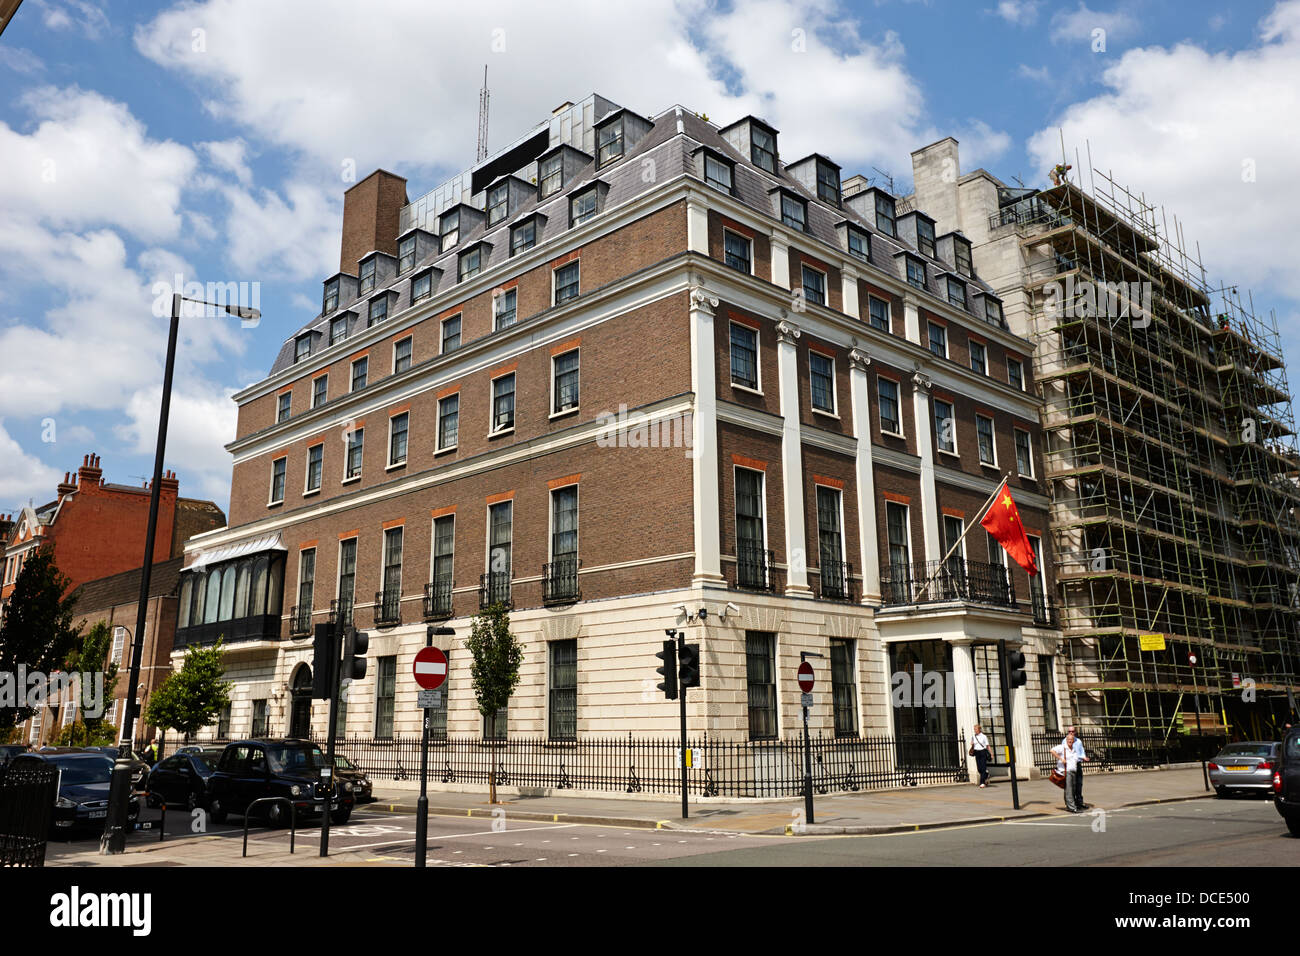 embassy of the peoples republic of china London England UK - Stock Image